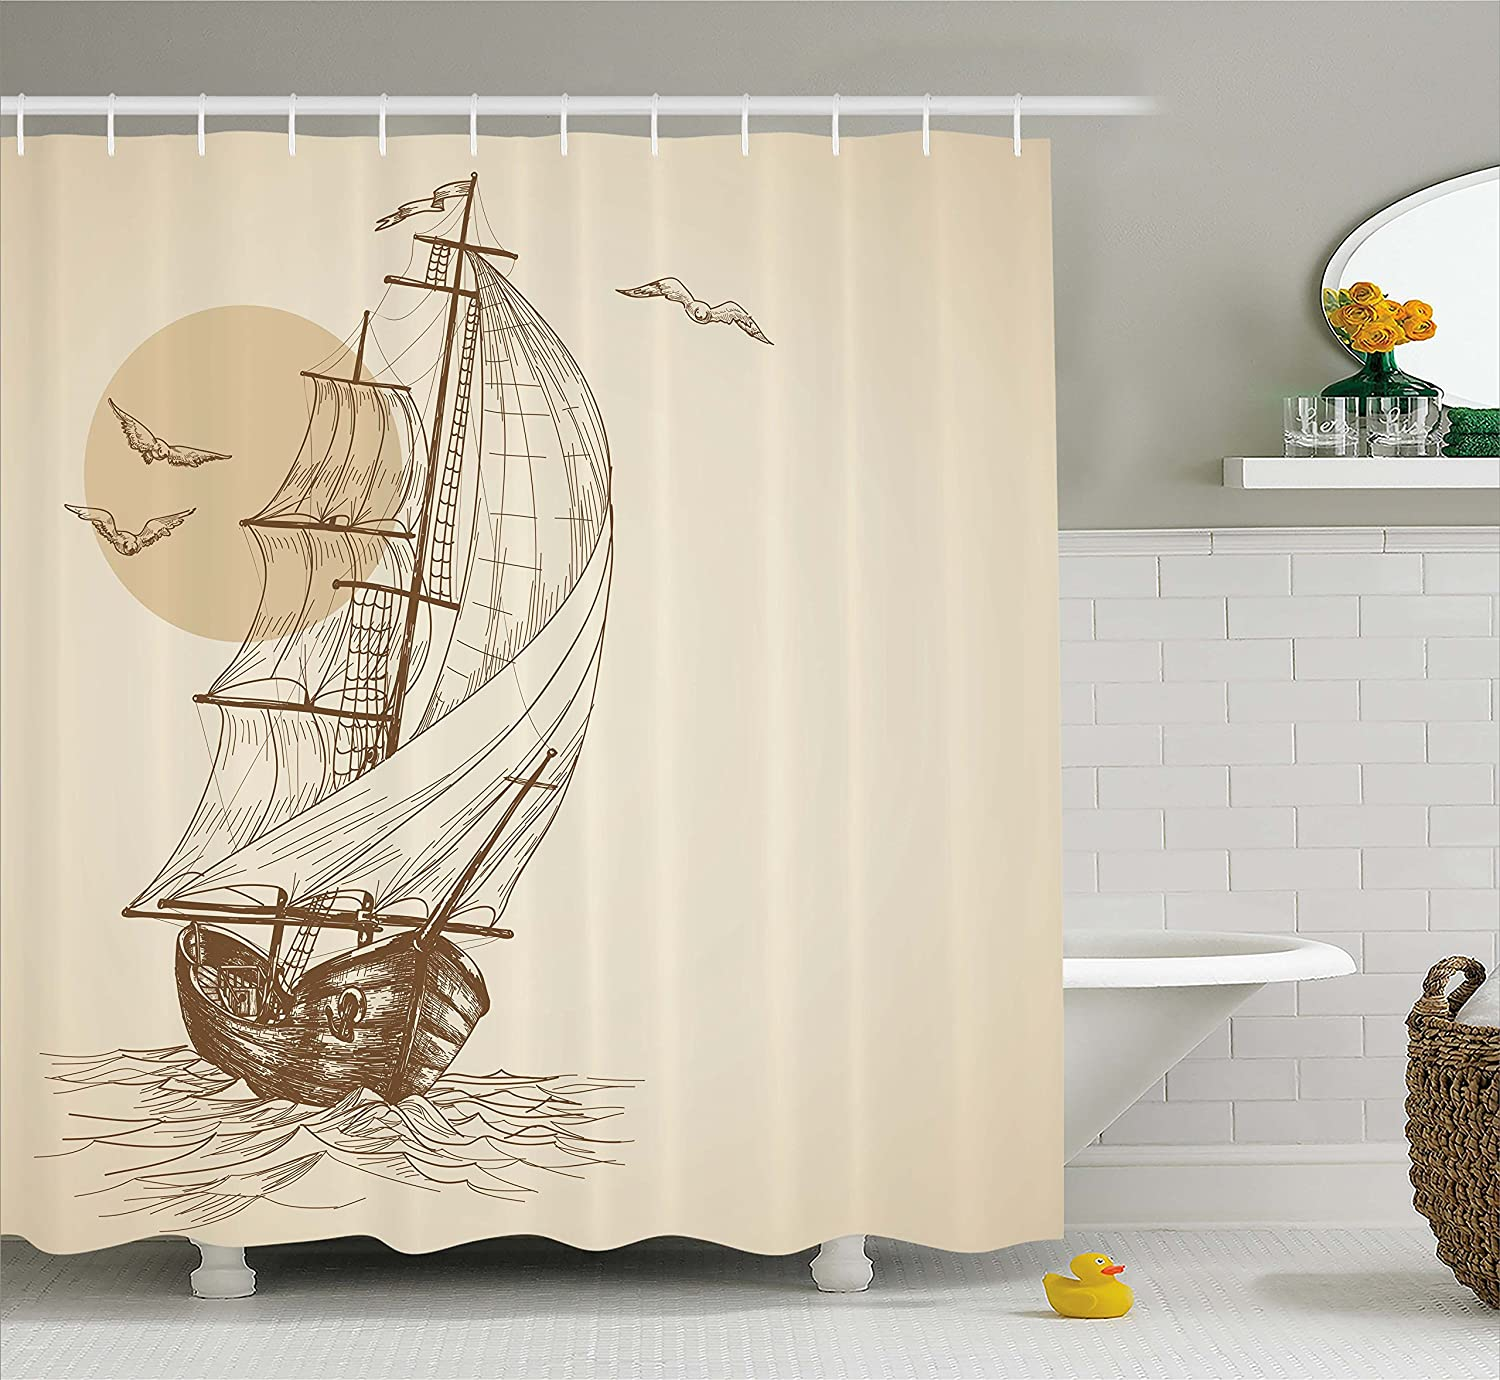 Old Wooden Sailboat on Waves Shower Curtain